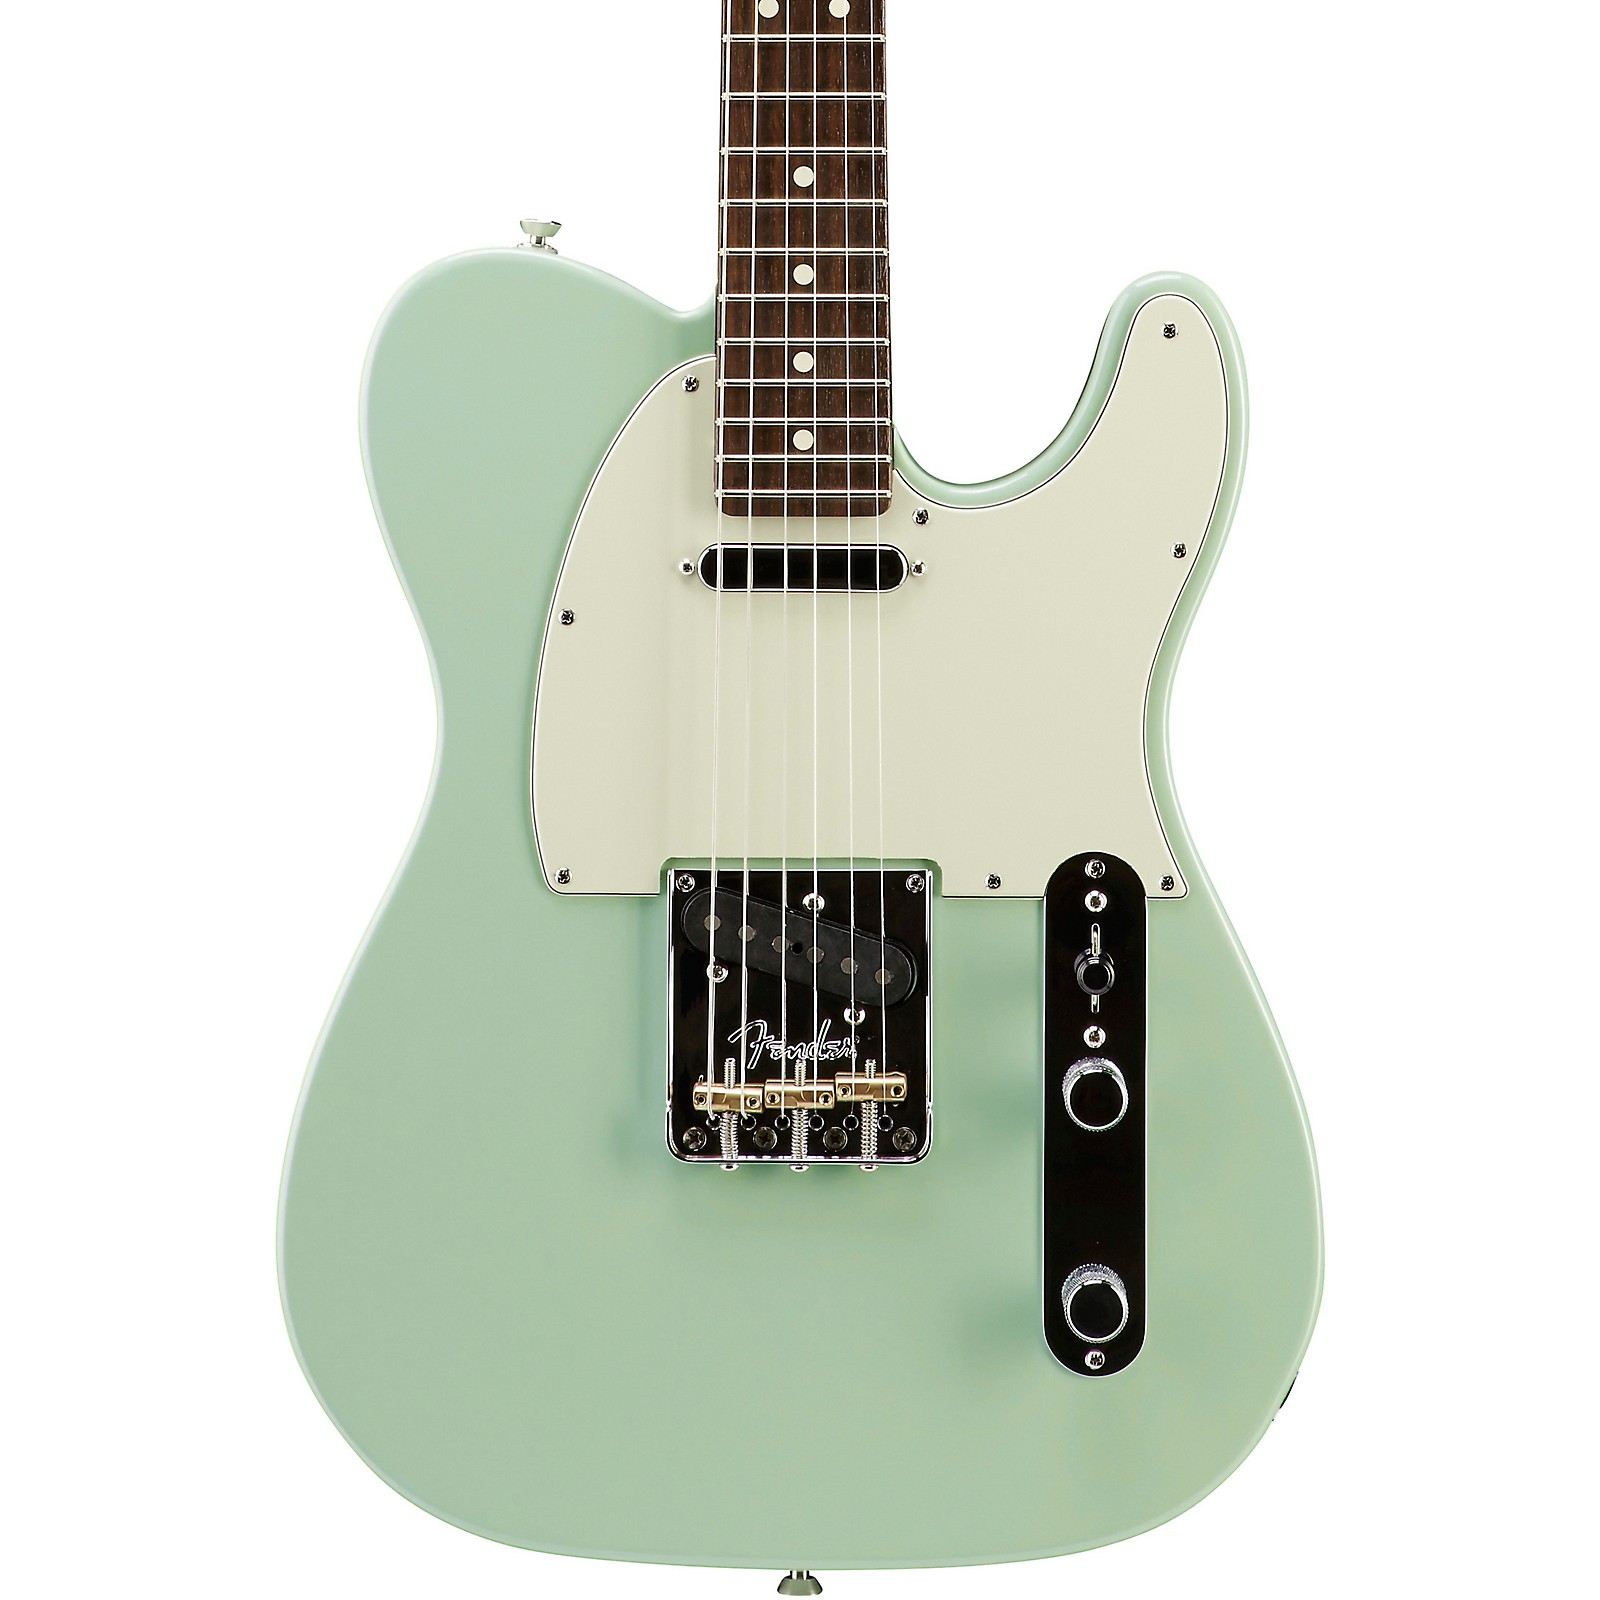 Fender Limited Edition American Professional Telecaster with Rosewood Neck